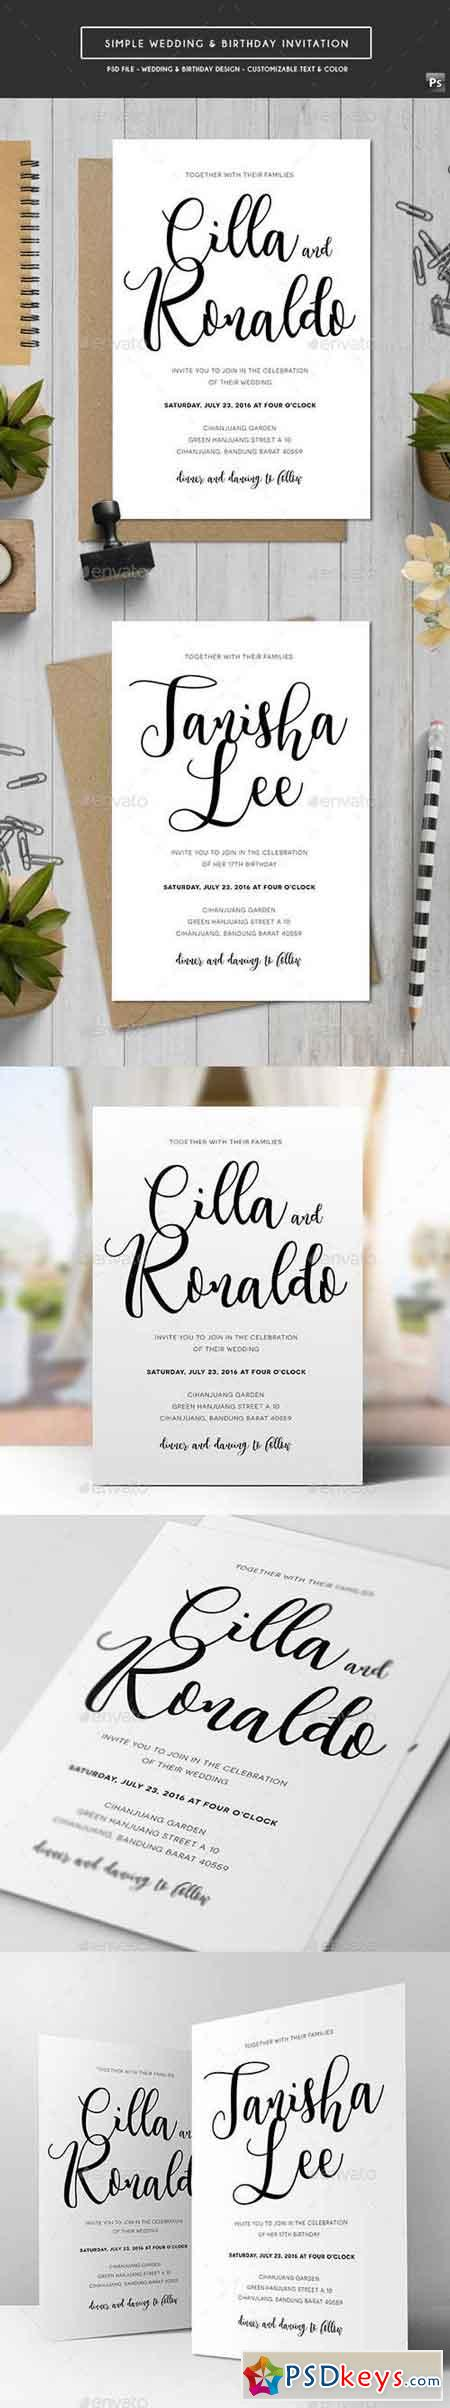 Simple Wedding & Birthday Invitation 18513301